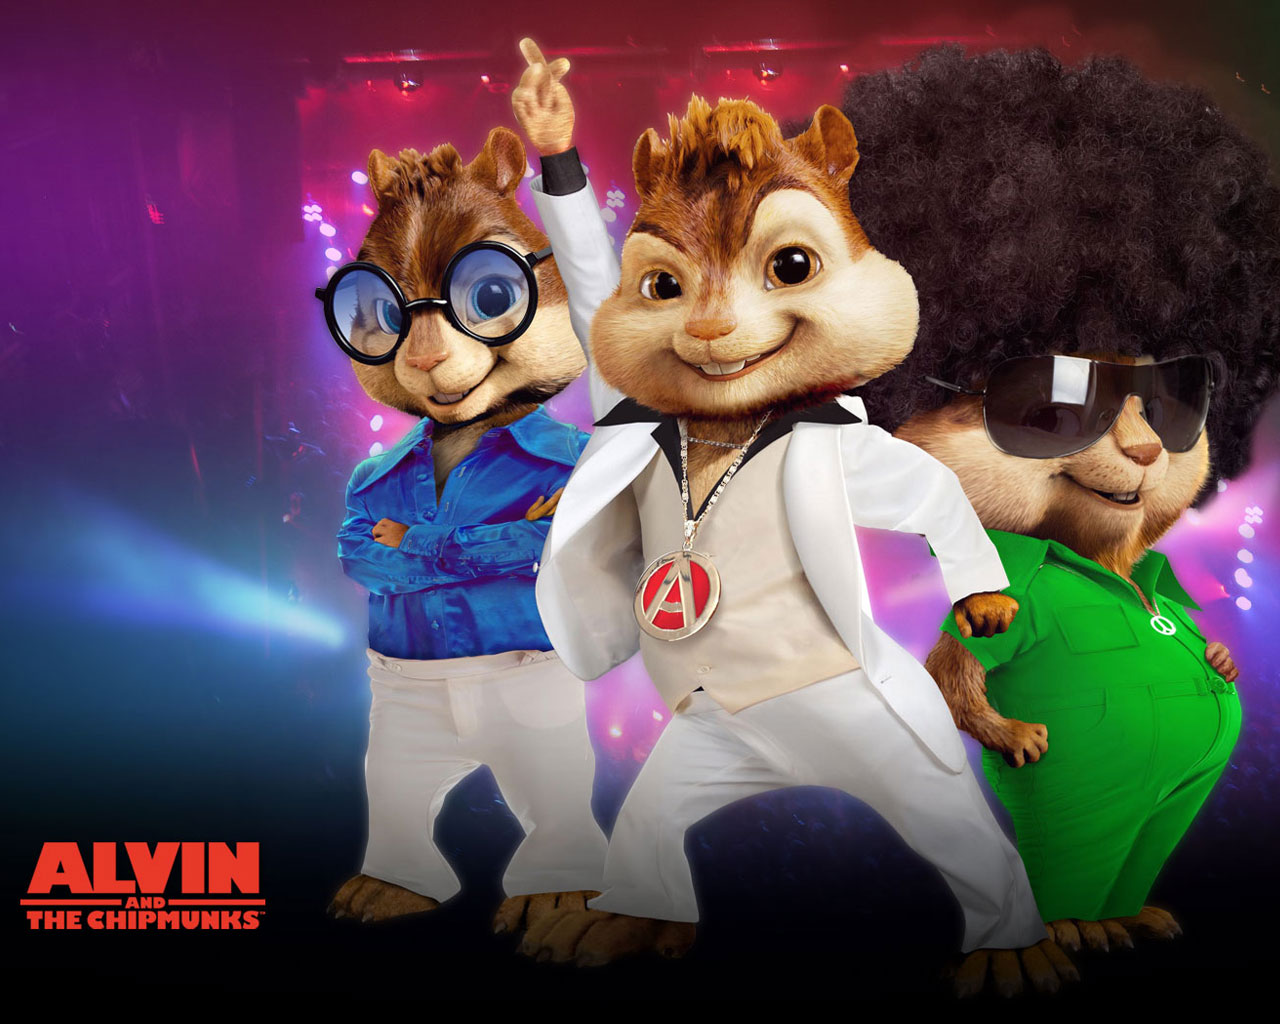 Alvin and the Chipmunks Cartoon Image